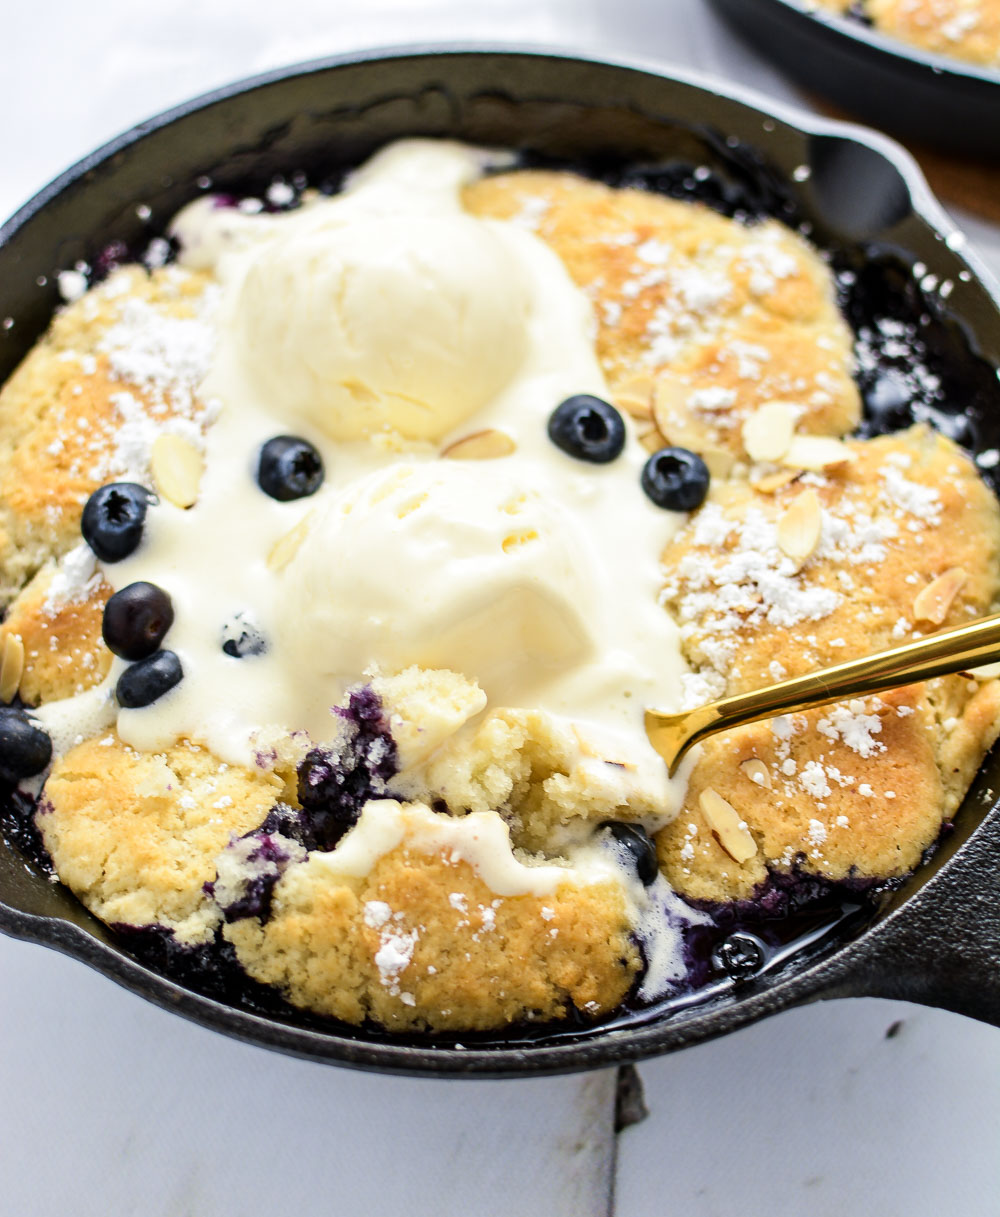 Sweet Bourbon Blueberry Cobbler